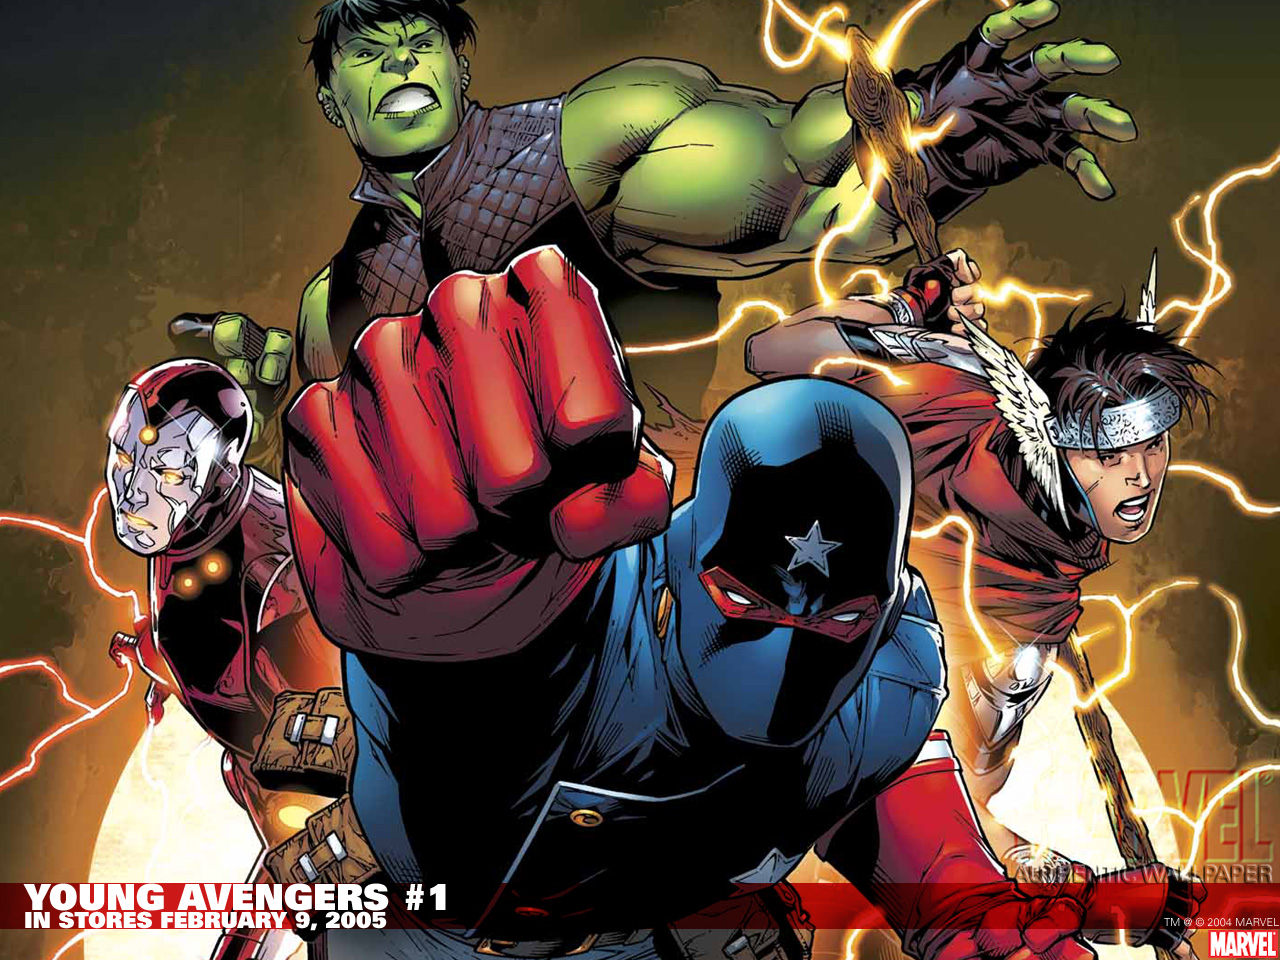 Digital hd wallpapers amazing marvel hd wallpapers pack - Marvel android wallpaper hd ...